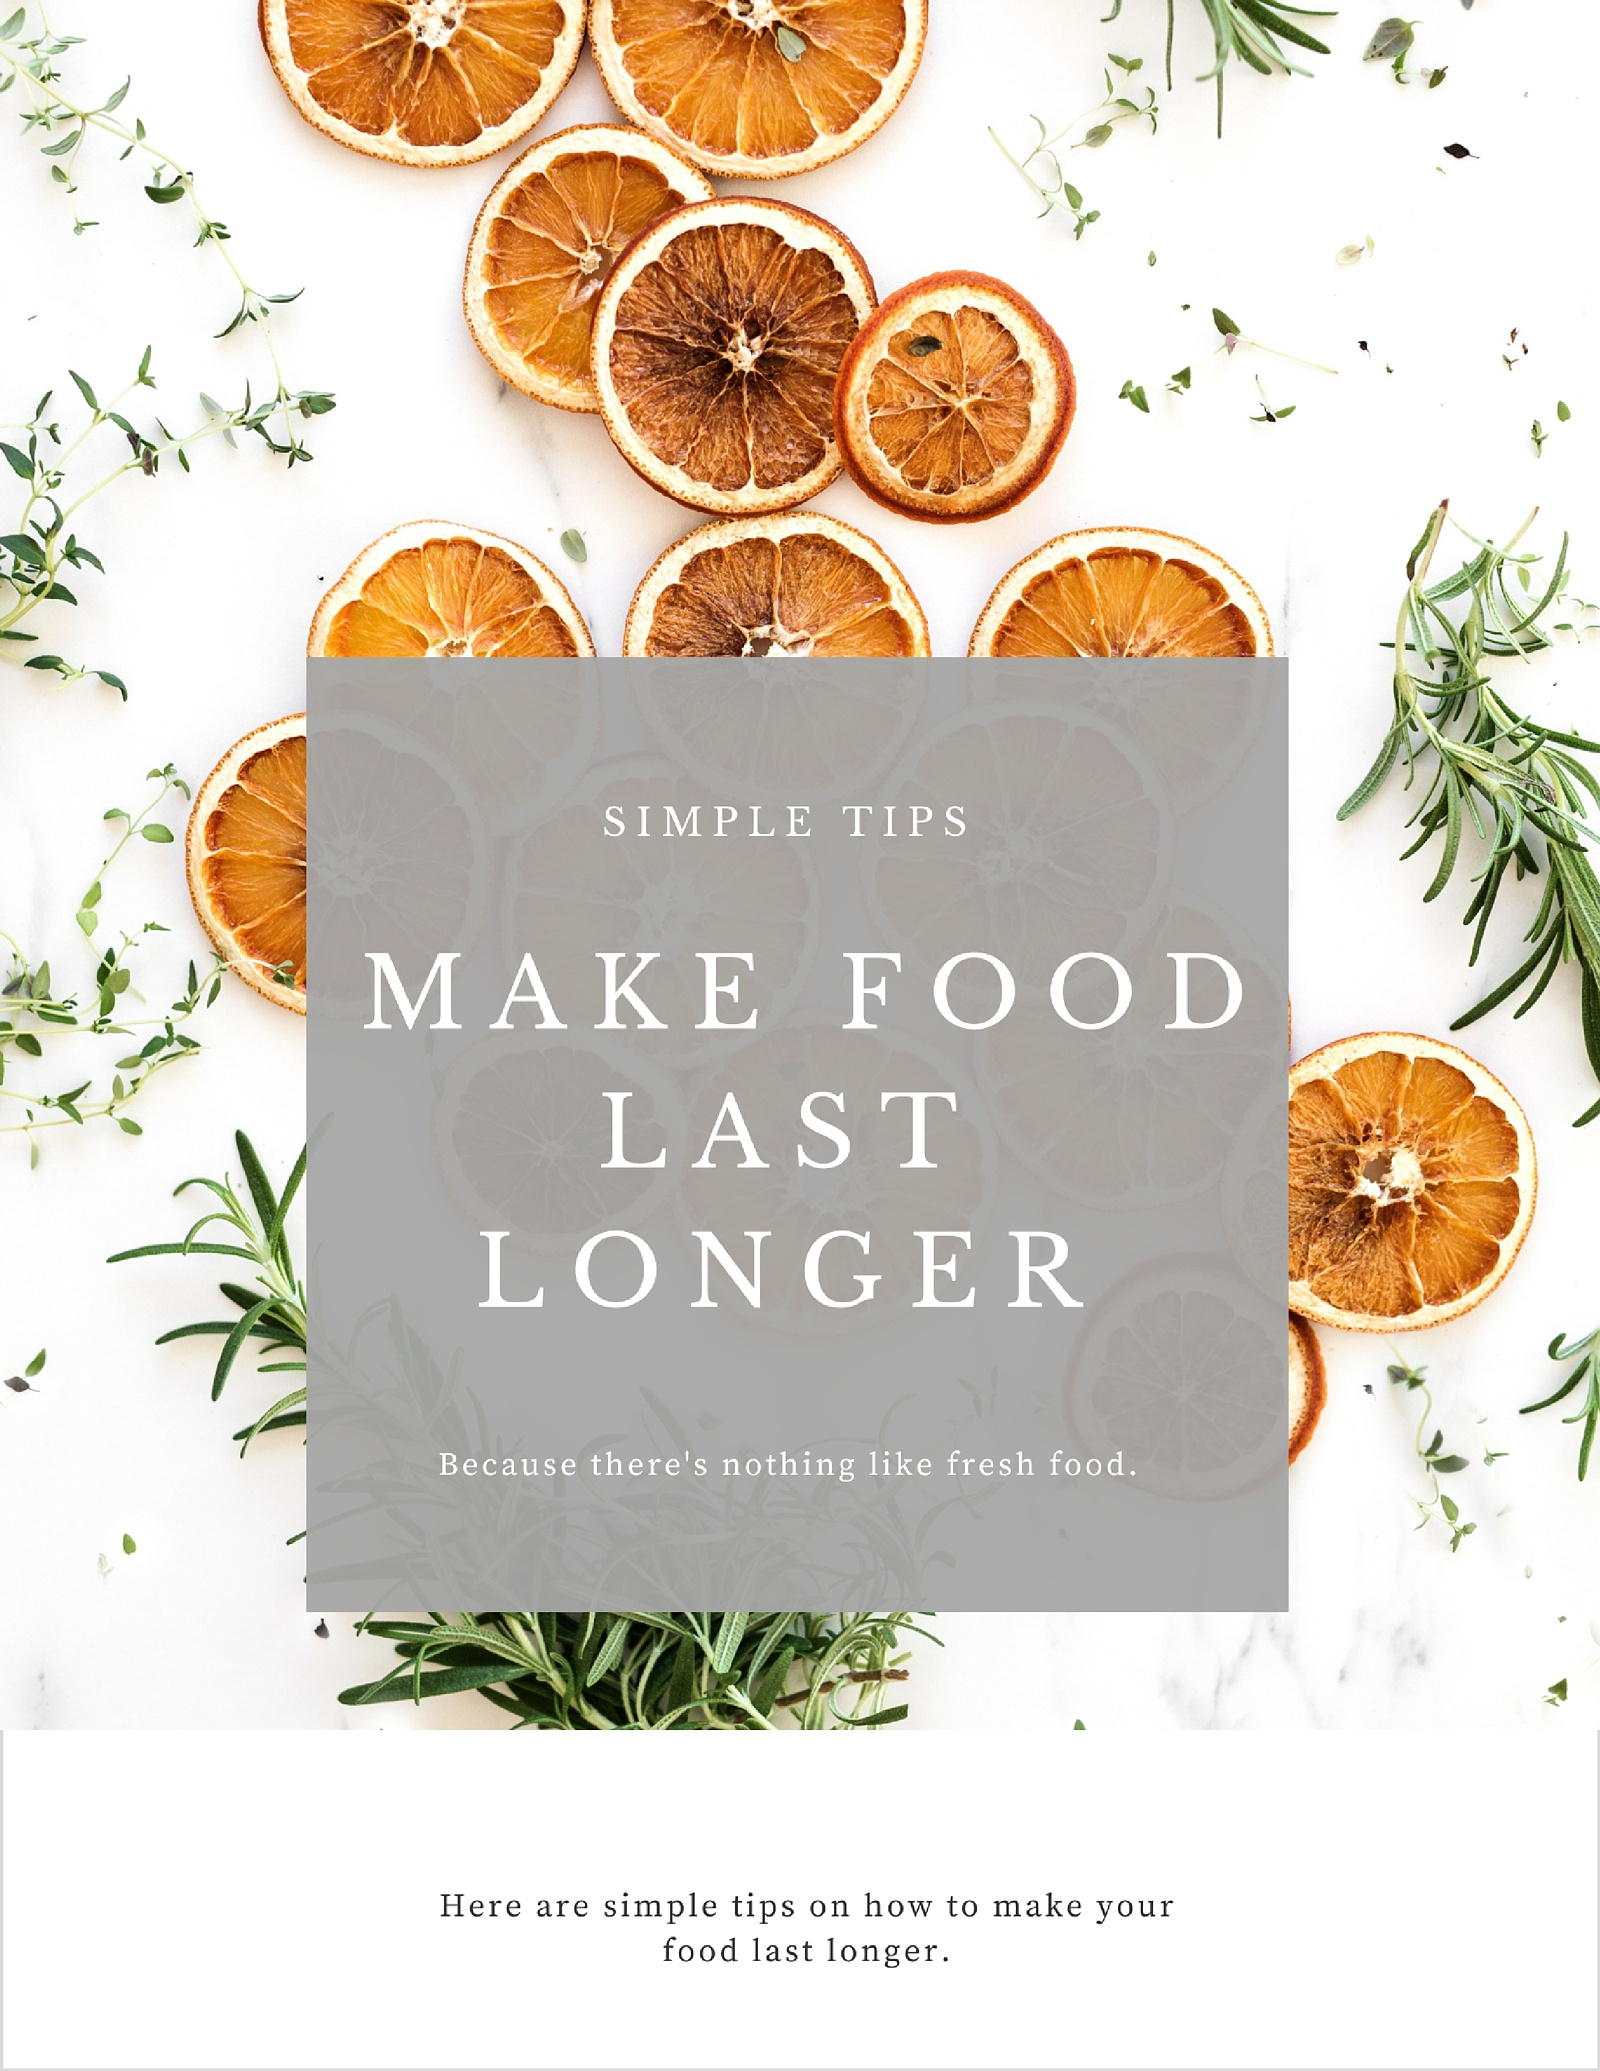 Food Storage: Making Your Food Last Longer